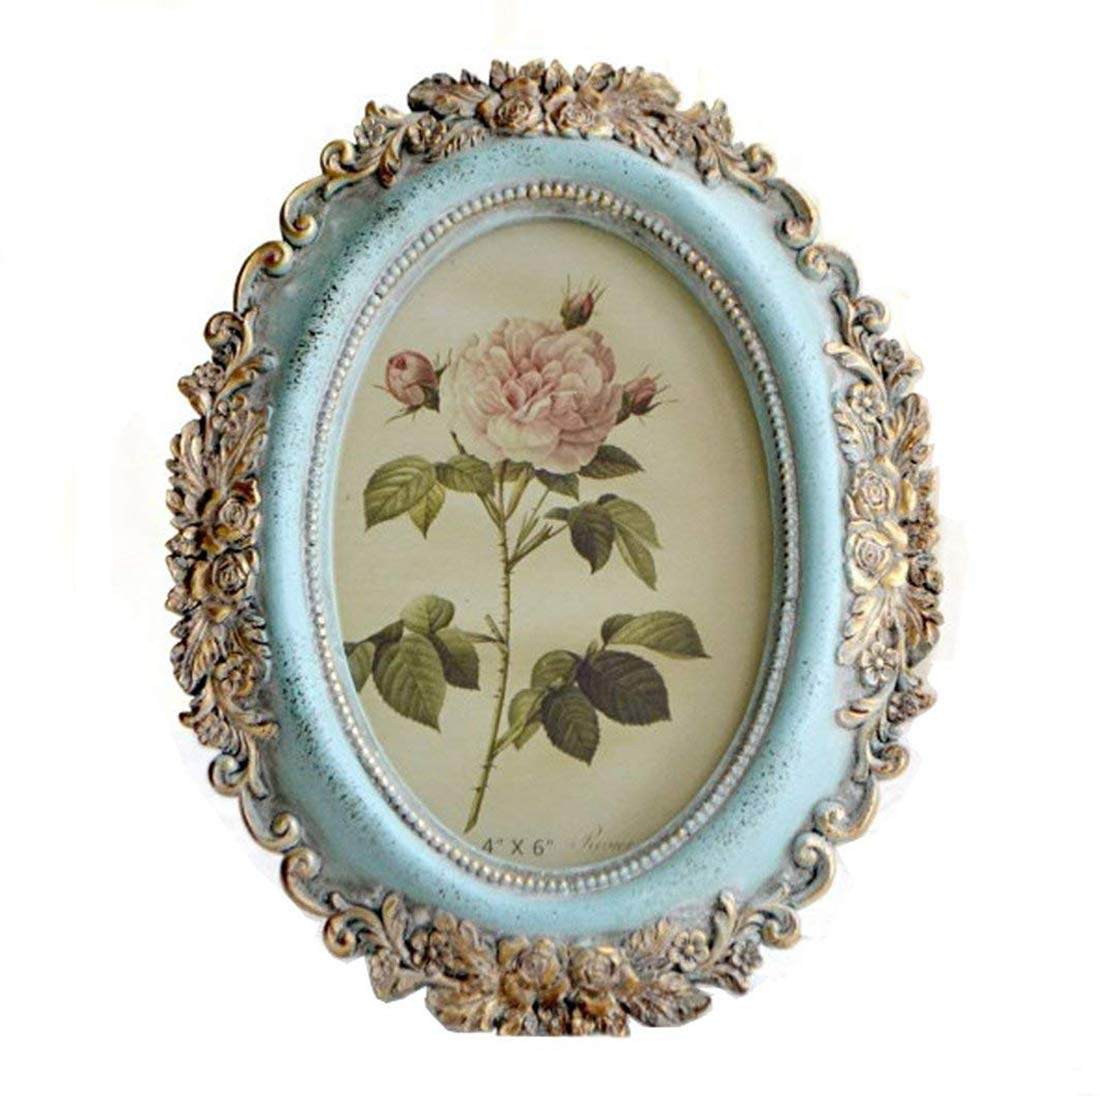 Vintage Picture Frame 4x6 Family Oval Table Top Photo Frame Wall Mounting Photo Frame for Home Decoration Ltd SIKOO-HK-PF-010